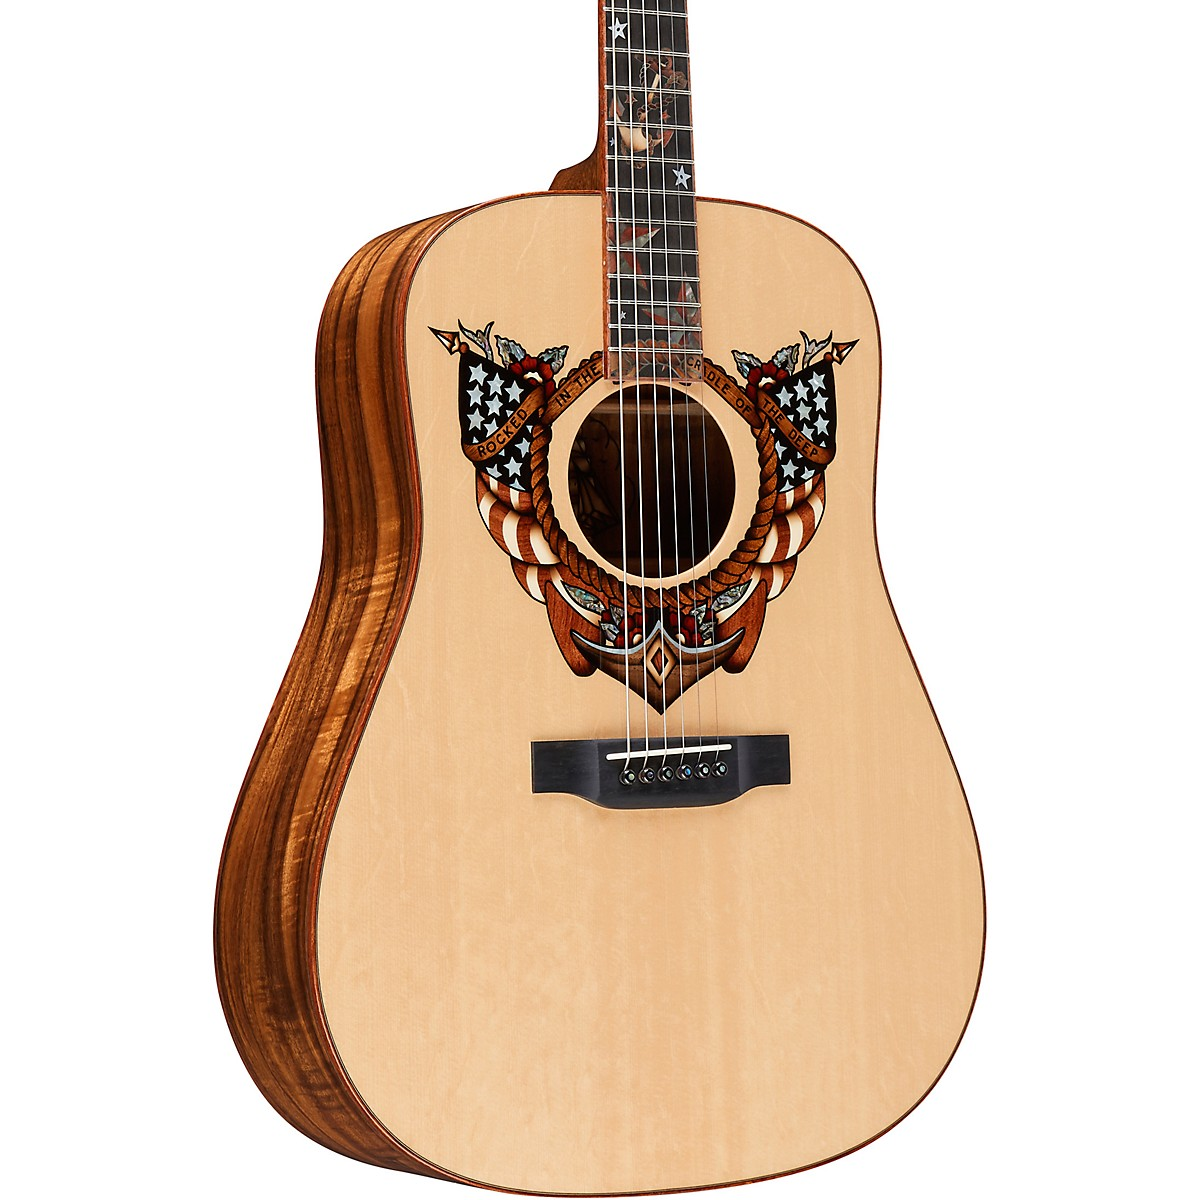 Martin Homeward Bound (Sailor Jerry) Dreadnought Acoustic Guitar